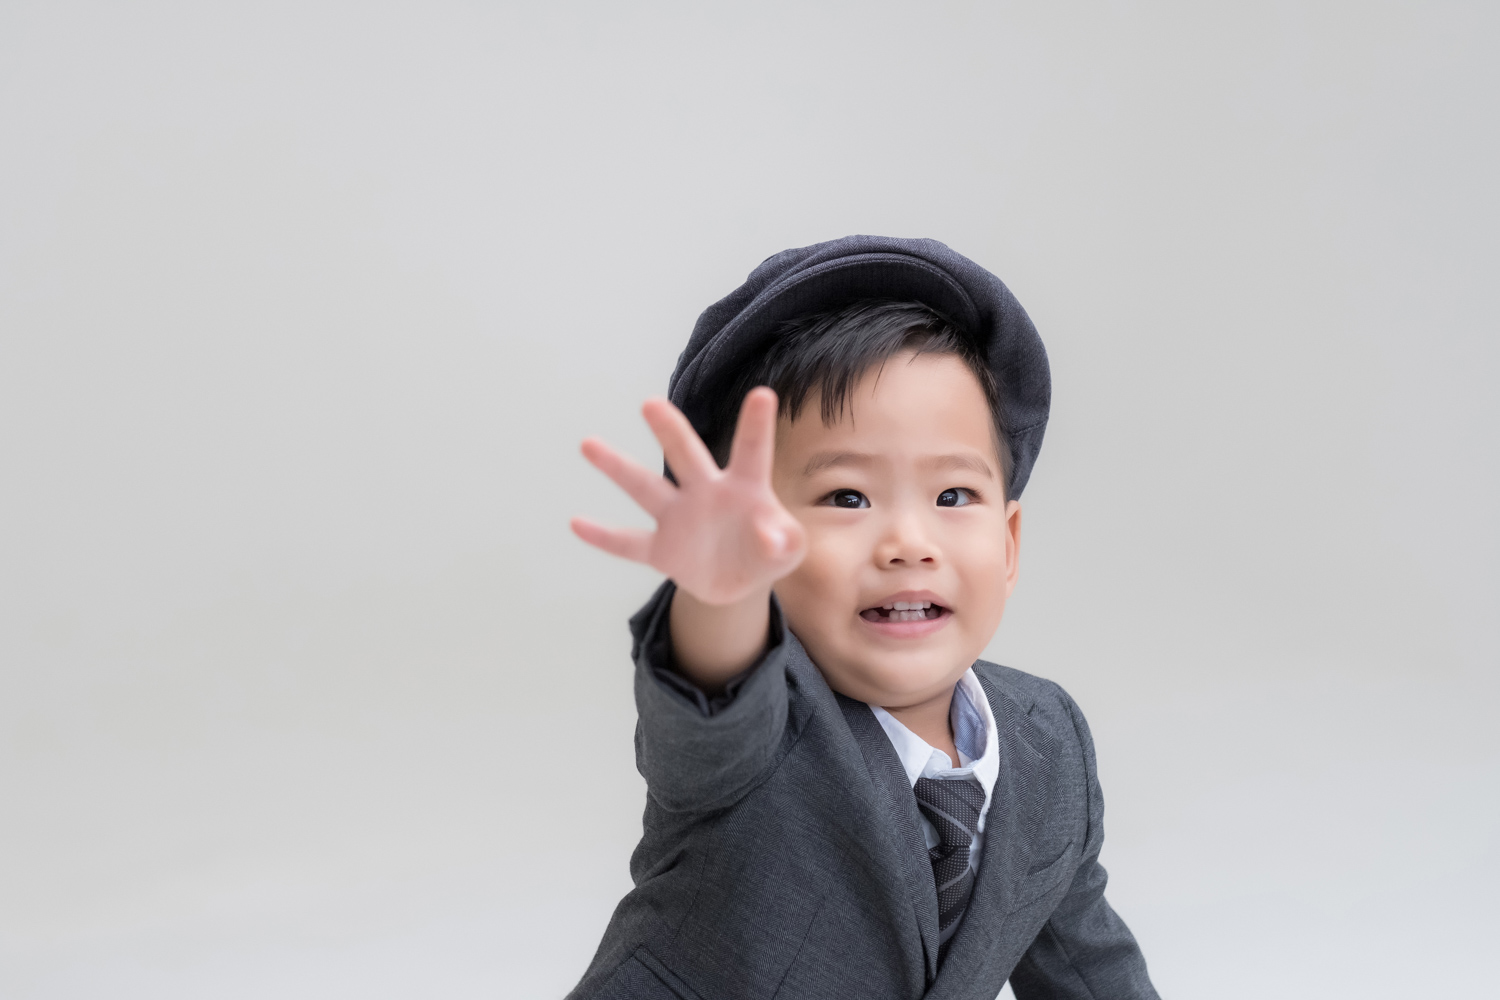 Little boy in suit reaches for camera.